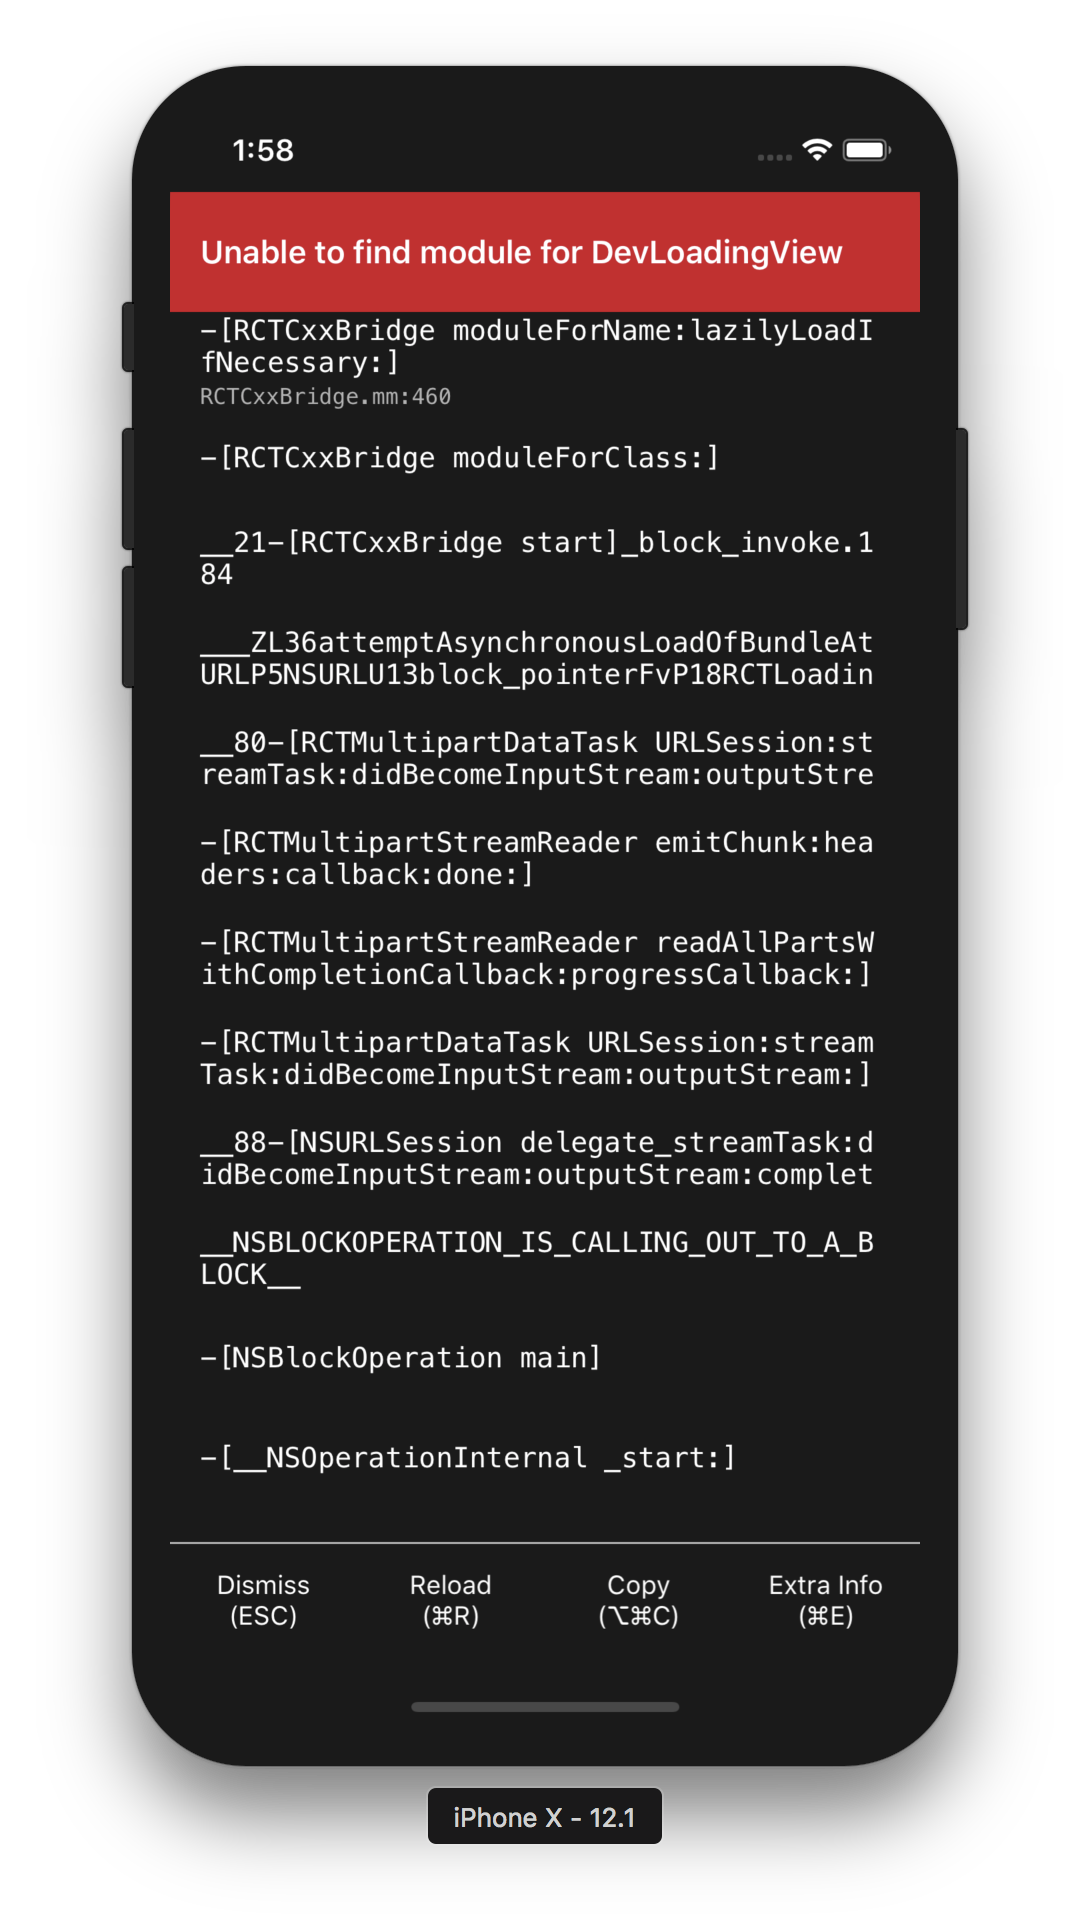 iOS] Simulator error message `Unable to find module for ...